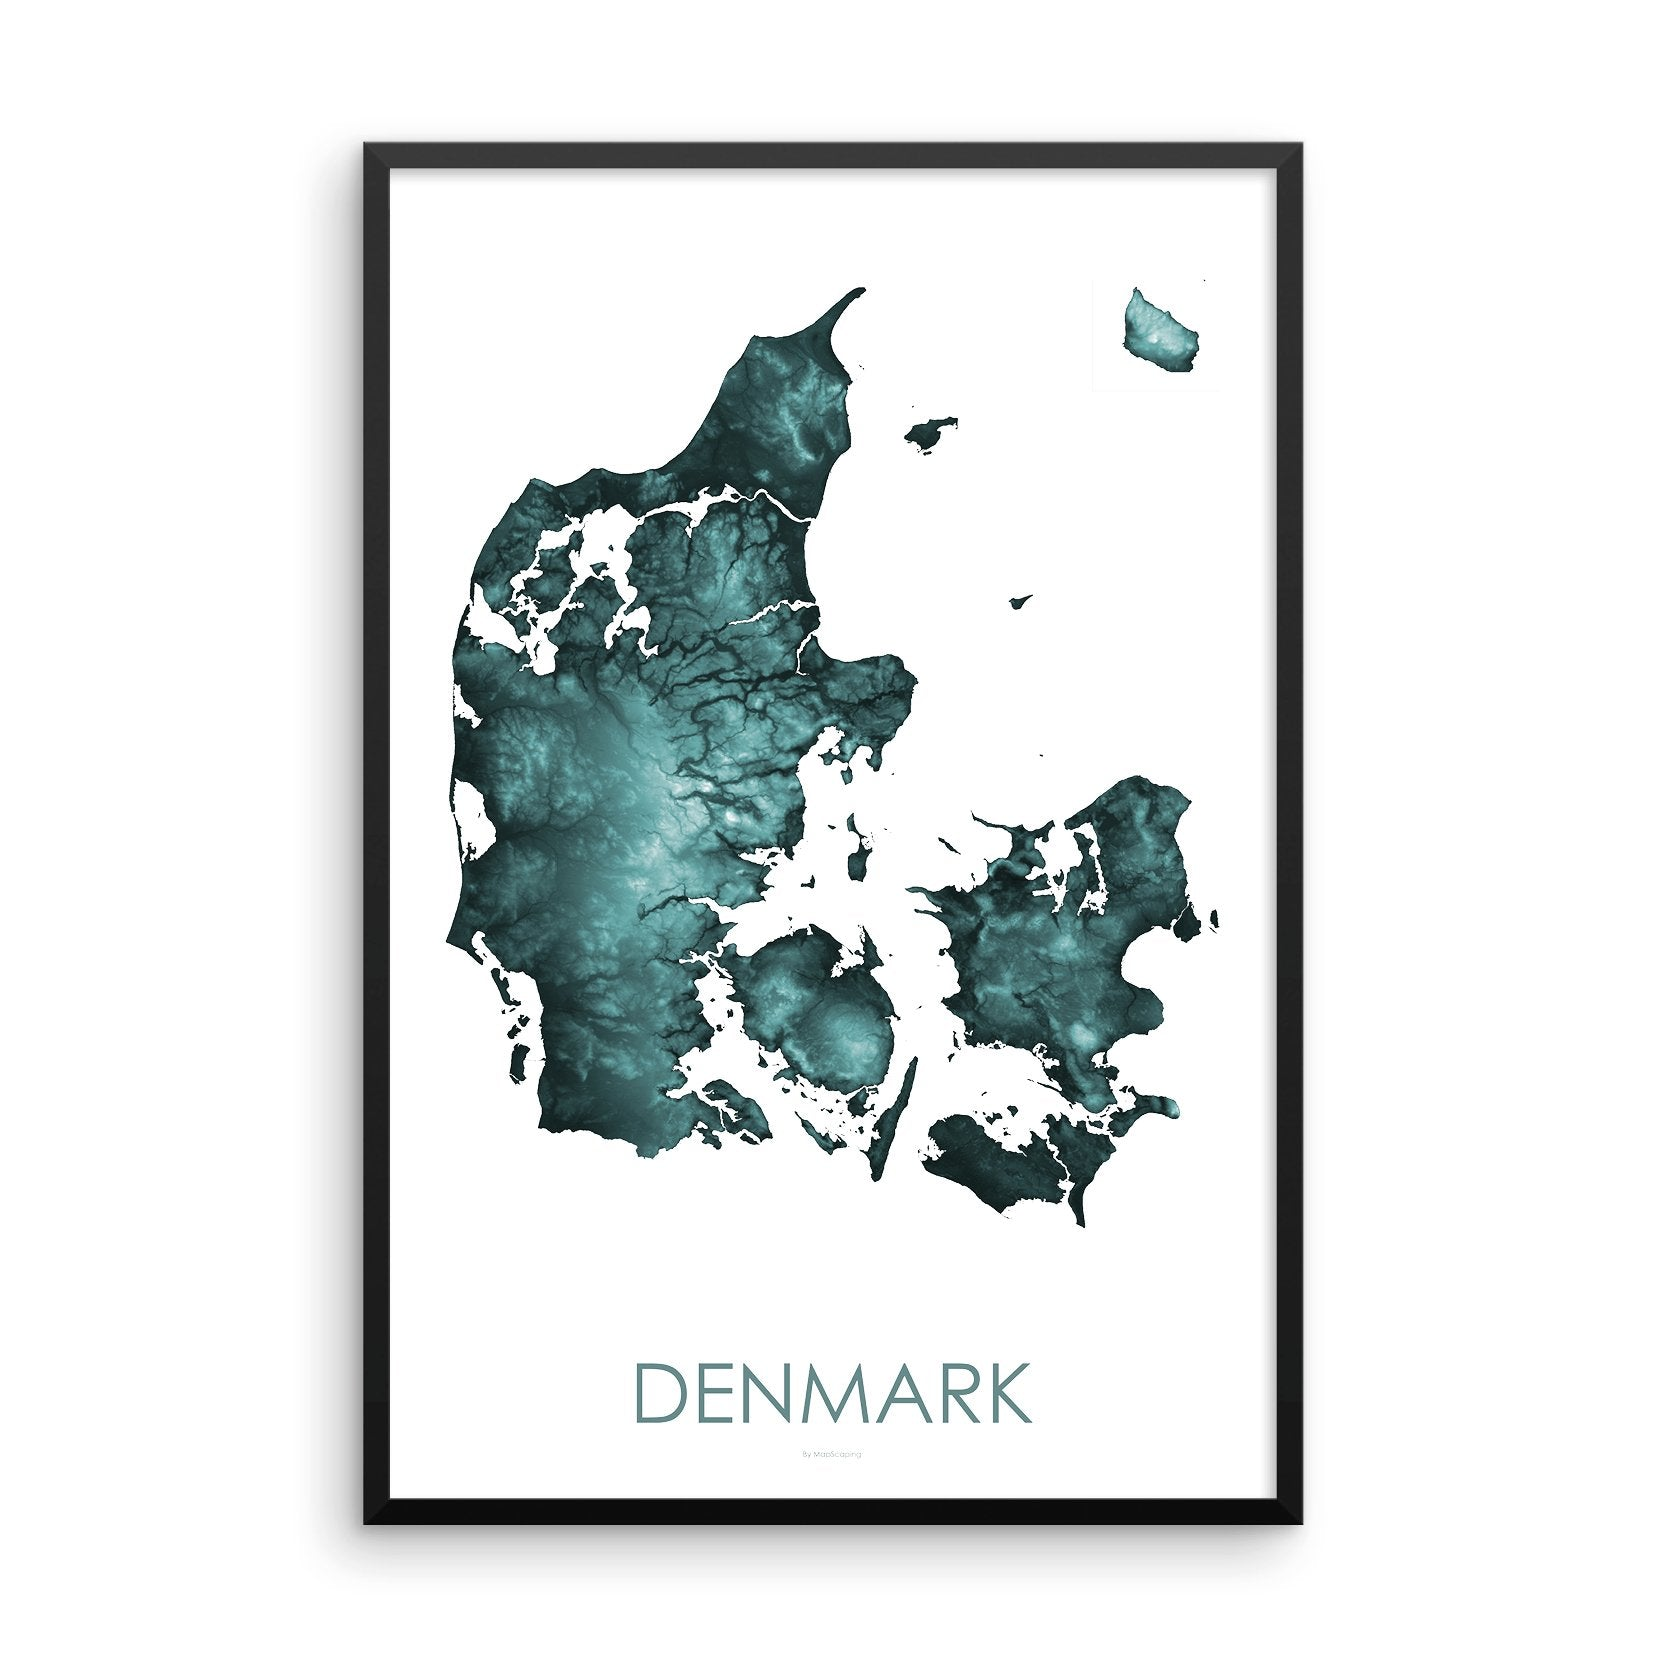 Framed teal poster map of Denmark and the danish islands, detailed map print showing the mountains of Denmark's landscape.